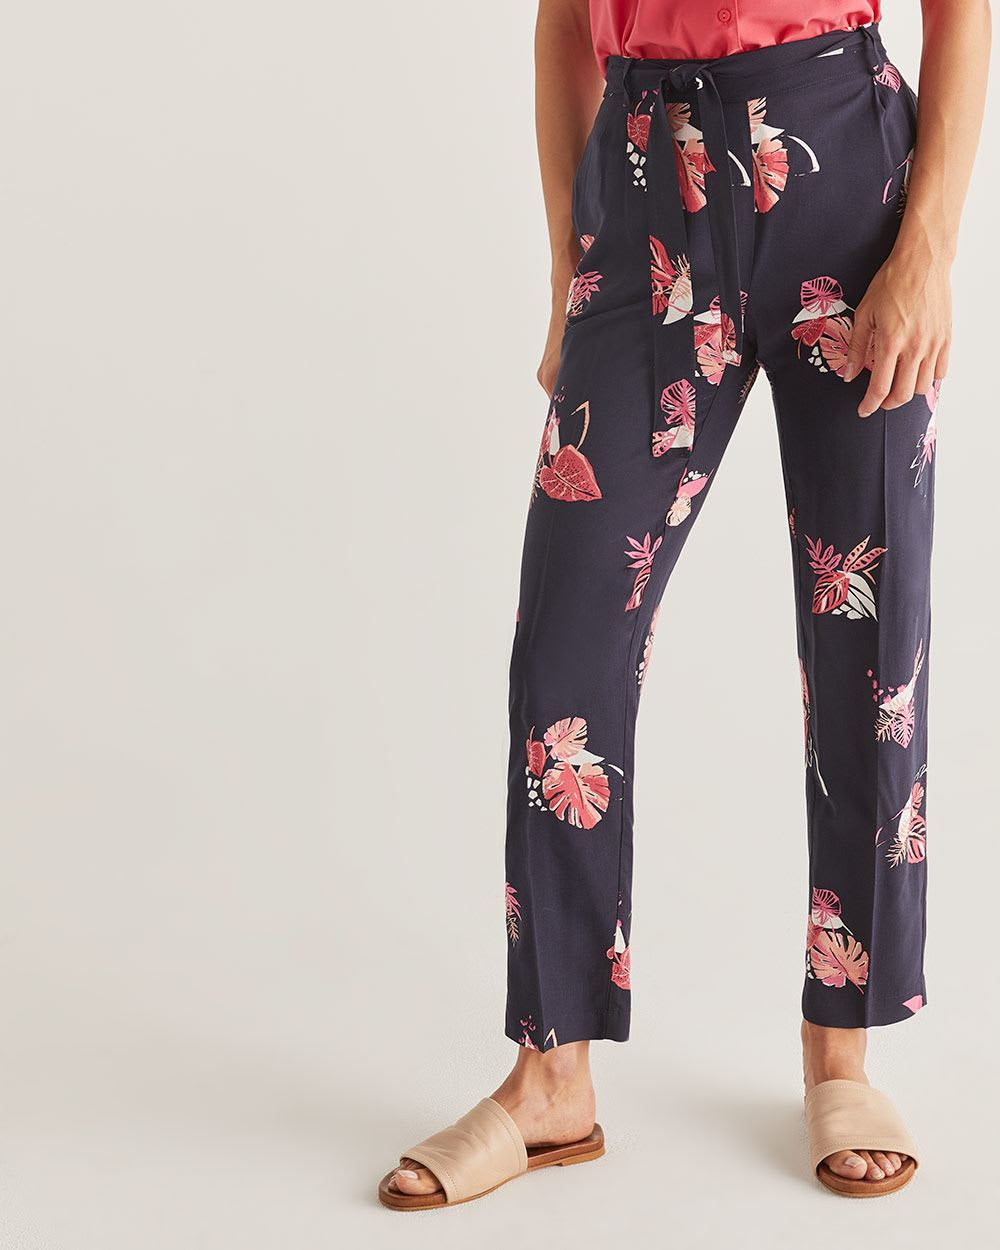 Slim Printed Ankle Pants with Sash - Petite